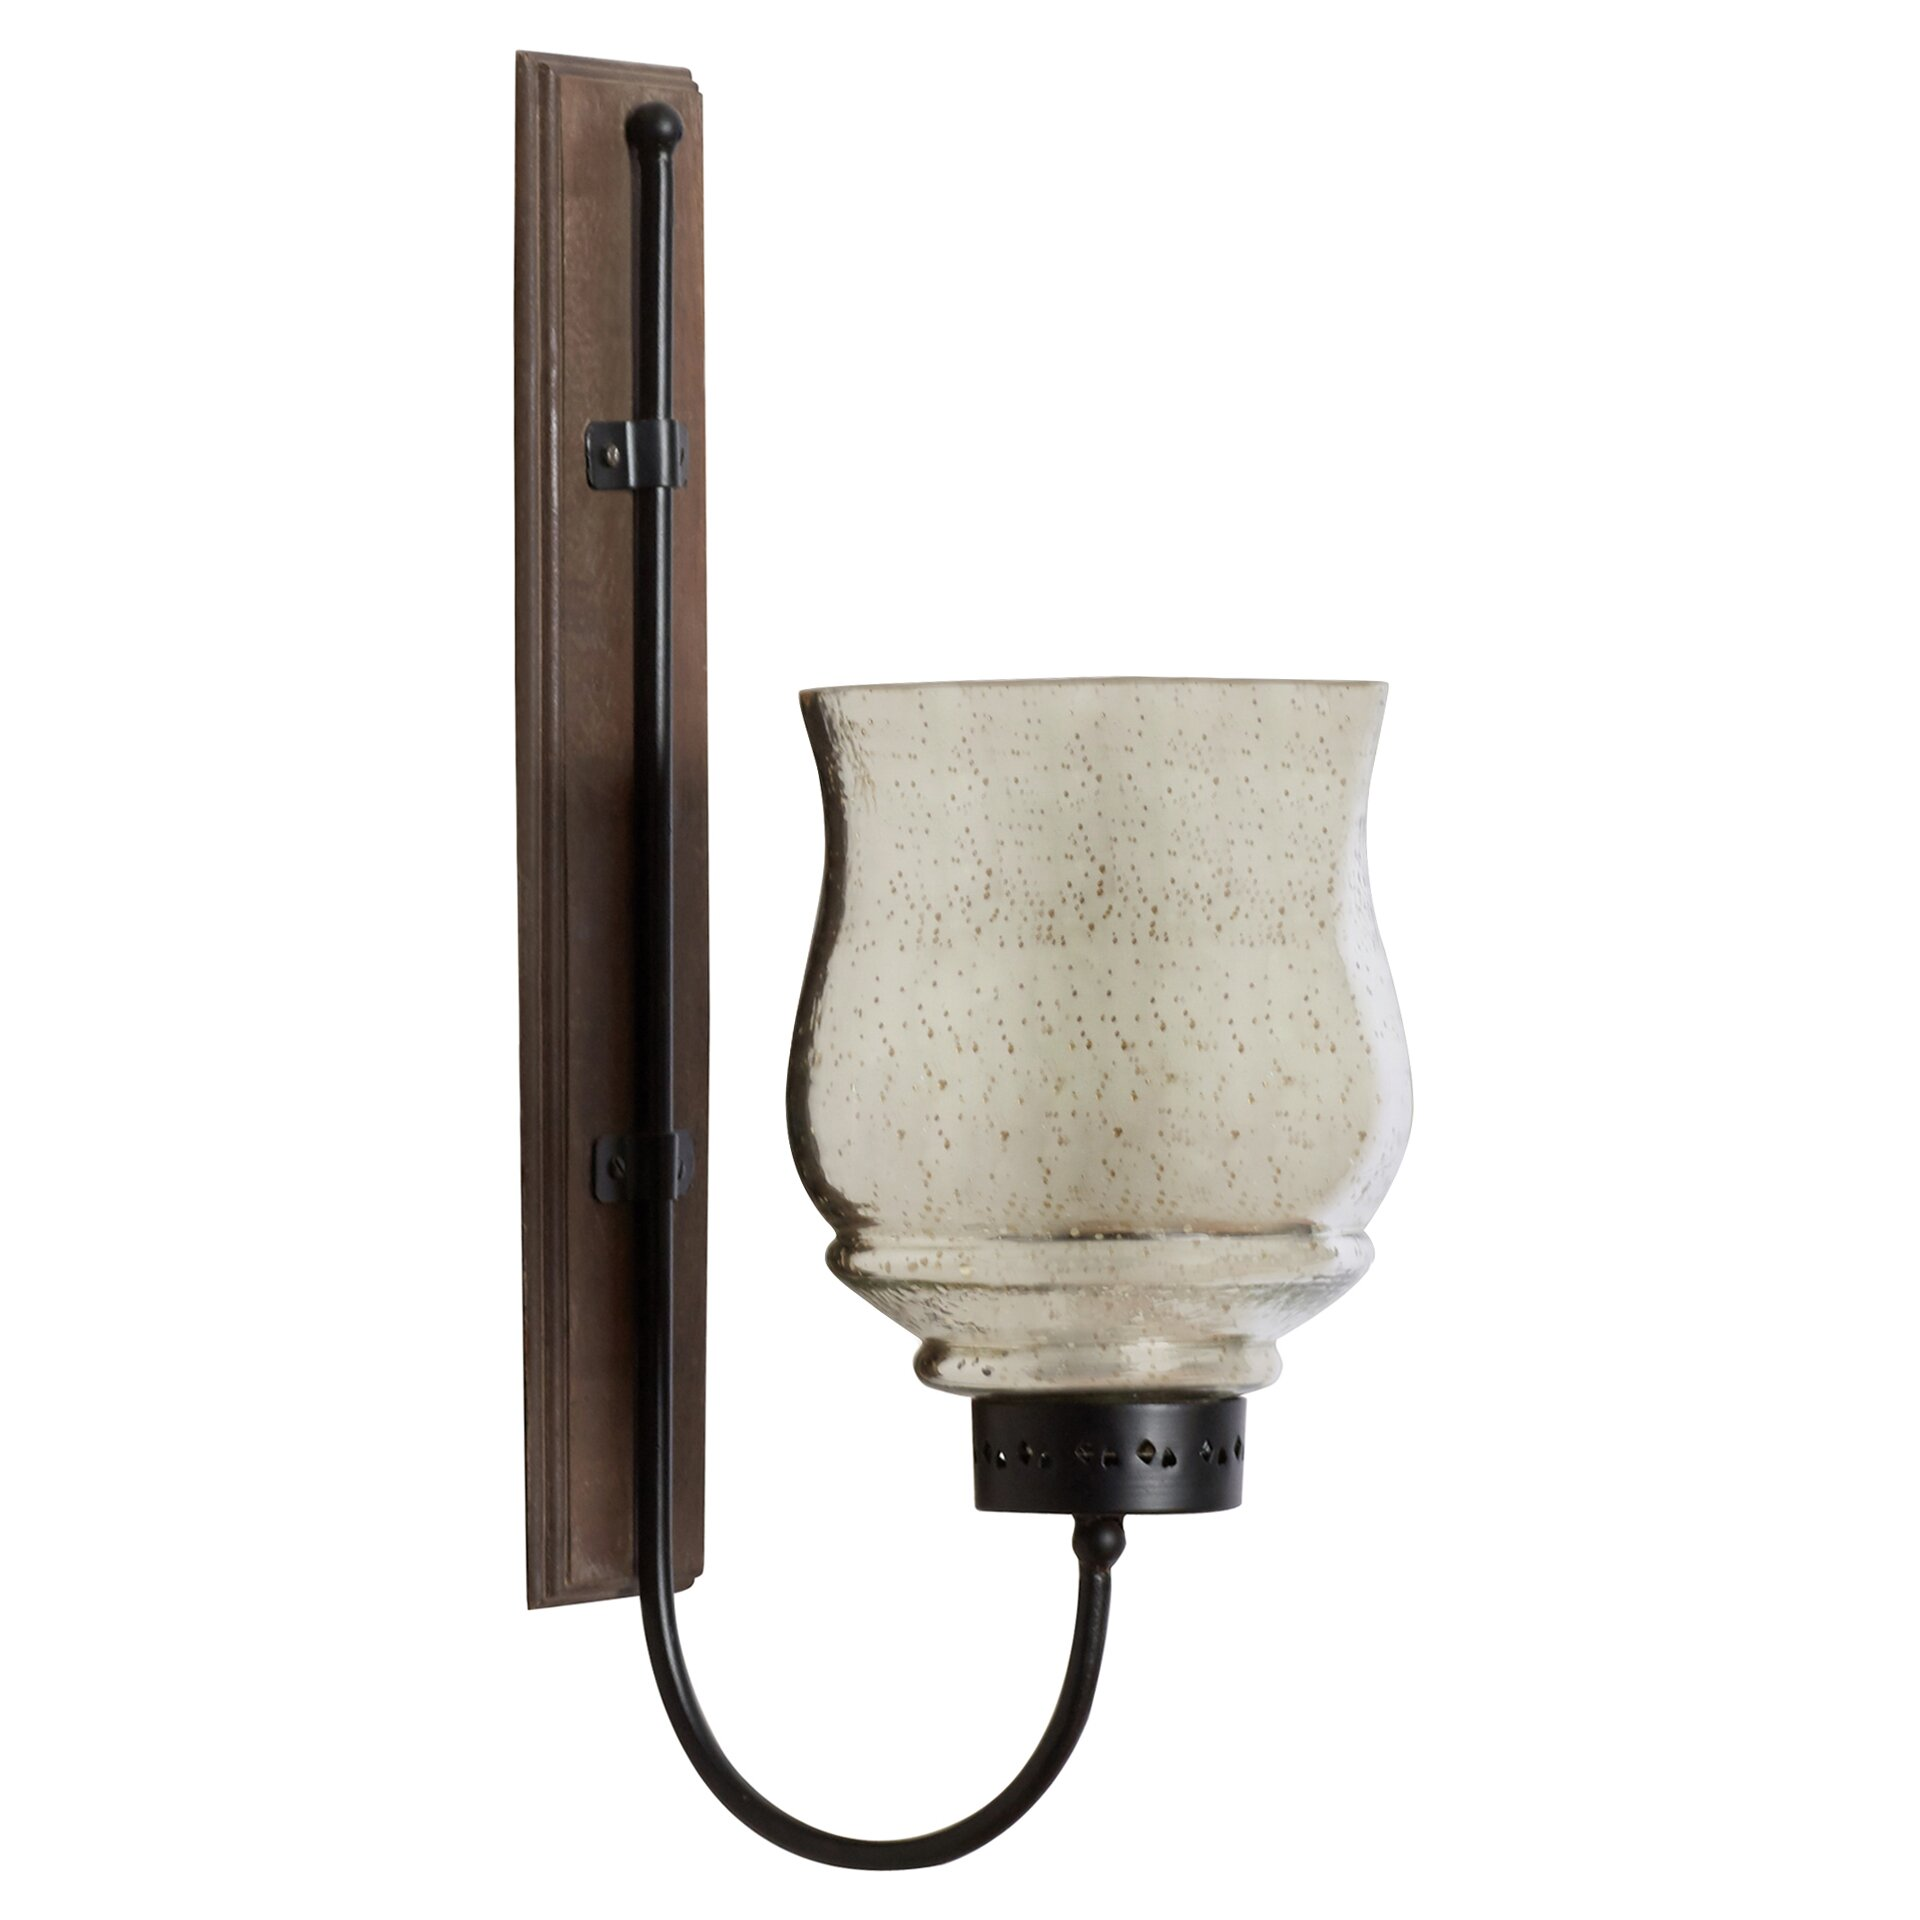 Wayfair Brass Wall Sconces : Alcott Hill Hicchecok Metal and Wood Wall Sconce & Reviews Wayfair